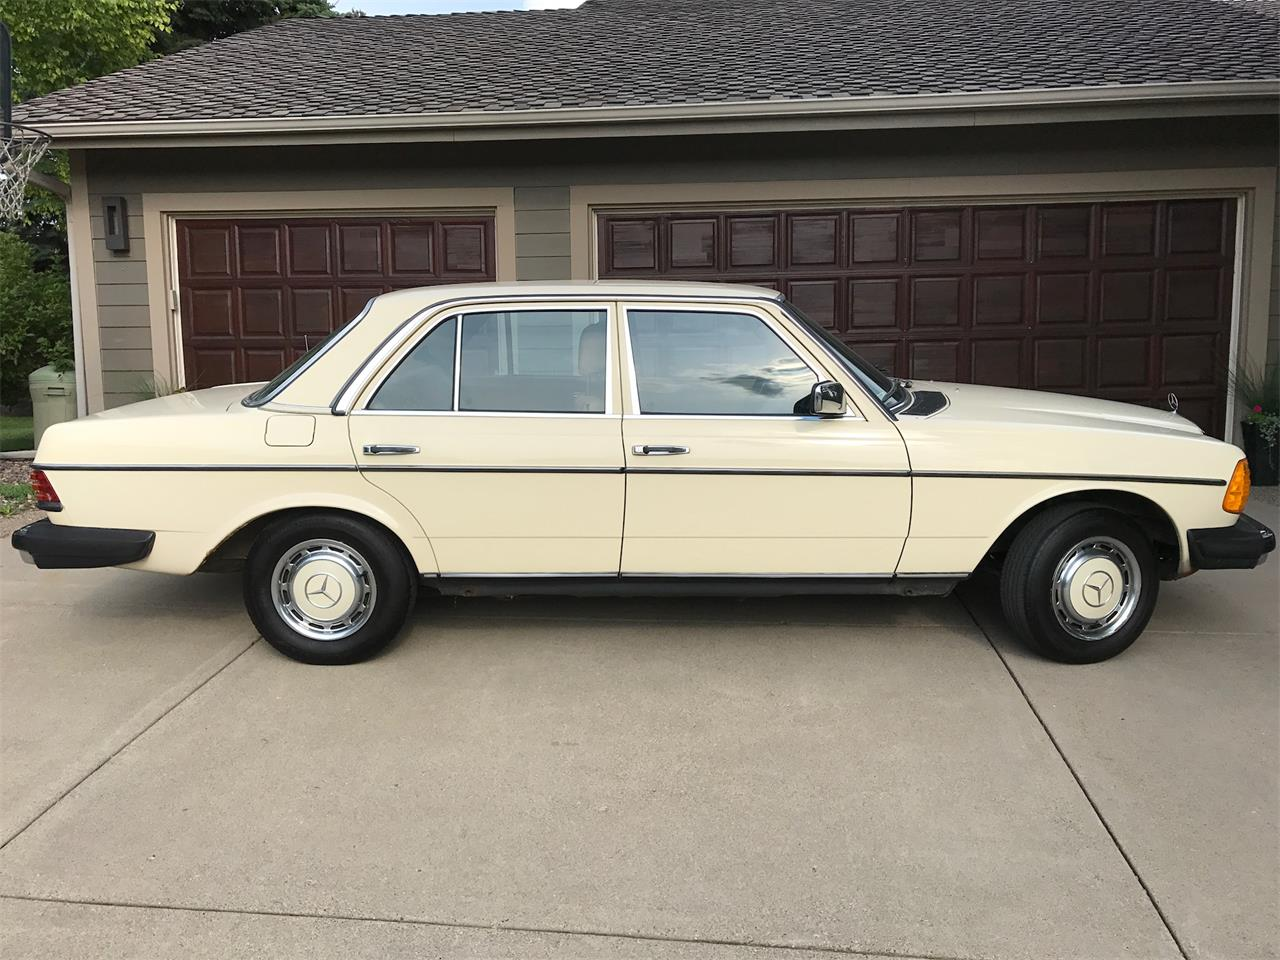 Large Picture of '83 Mercedes-Benz 240D located in Minnesota - $6,500.00 - LMLW